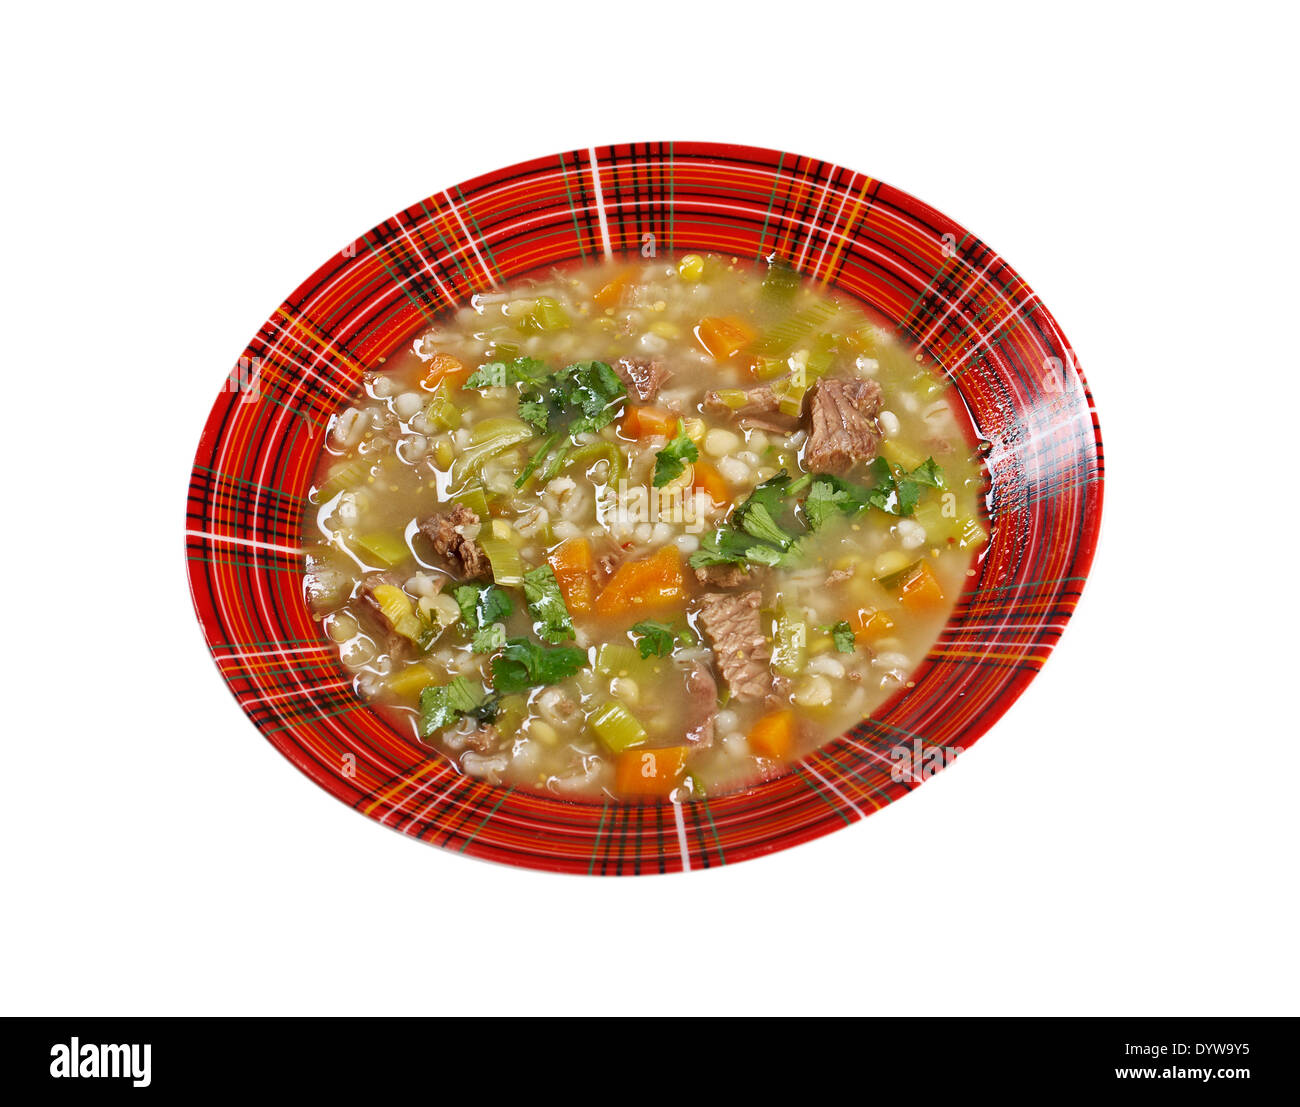 Scotch Broth Soupfarmhouse Kitchenold Fashioned Thrifty Soup Made From Meat On The Bon